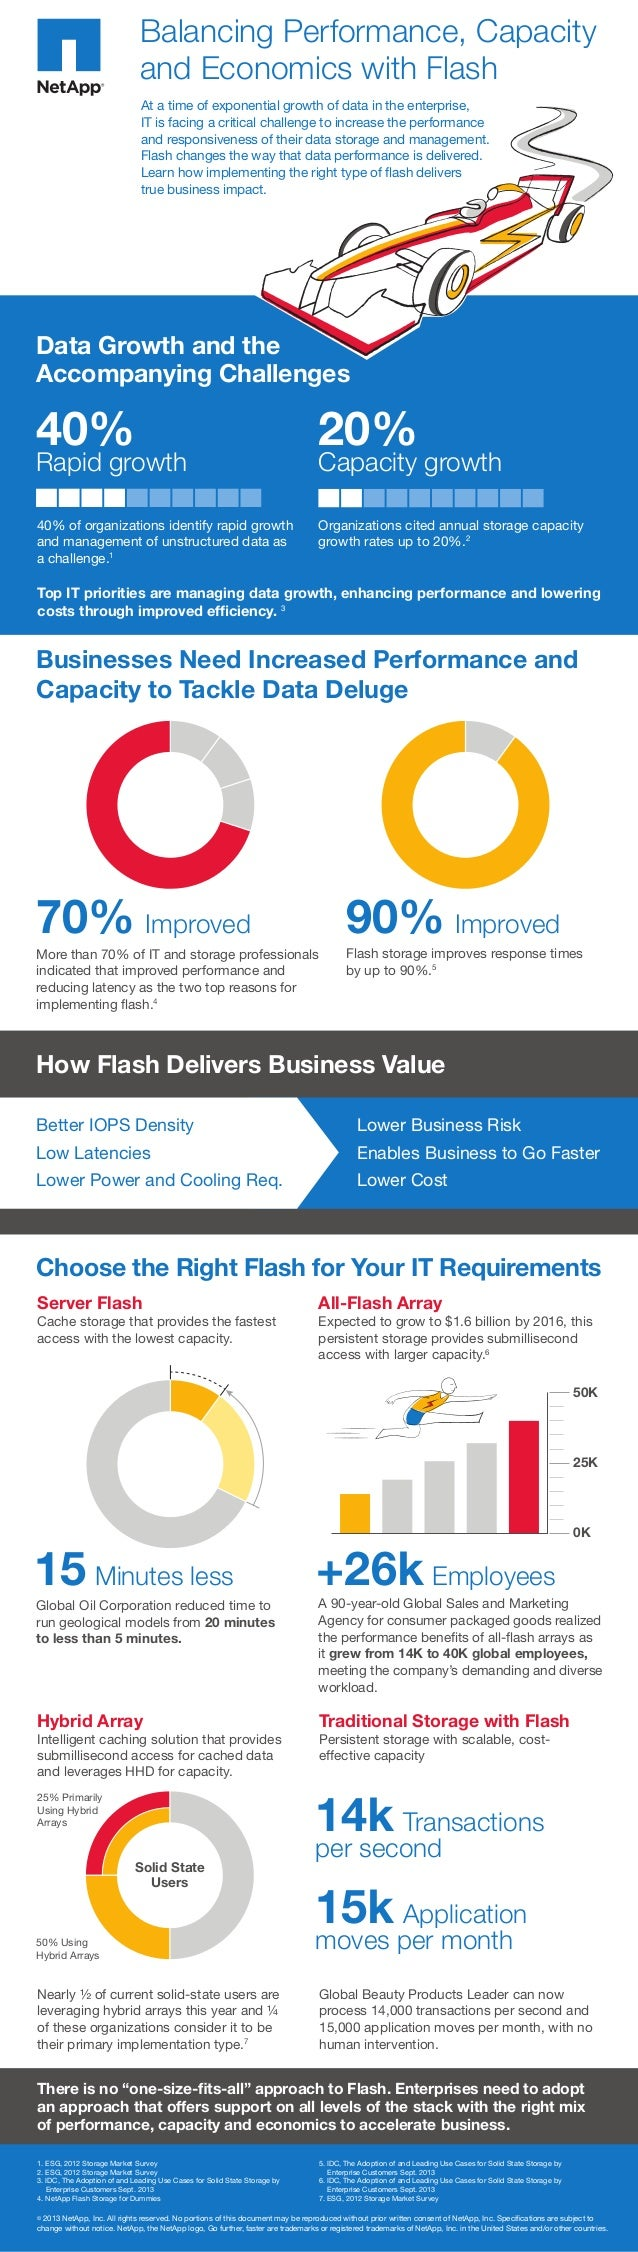 Balancing Performance, Capacity and Economics with Flash